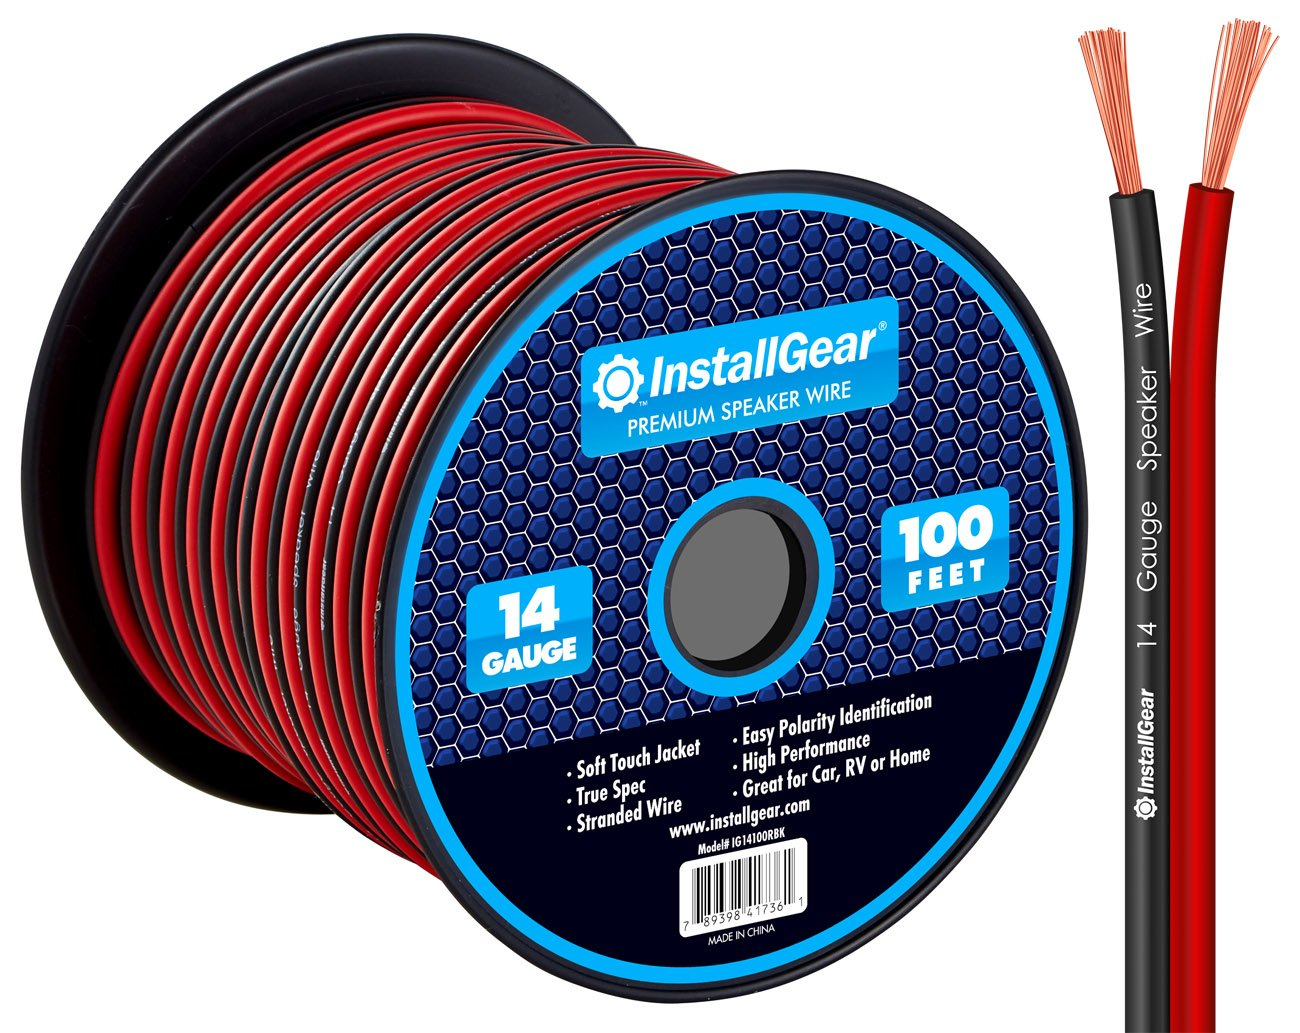 InstallGear 14 Gauge AWG 100ft Speaker Wire Cable - Red/Black